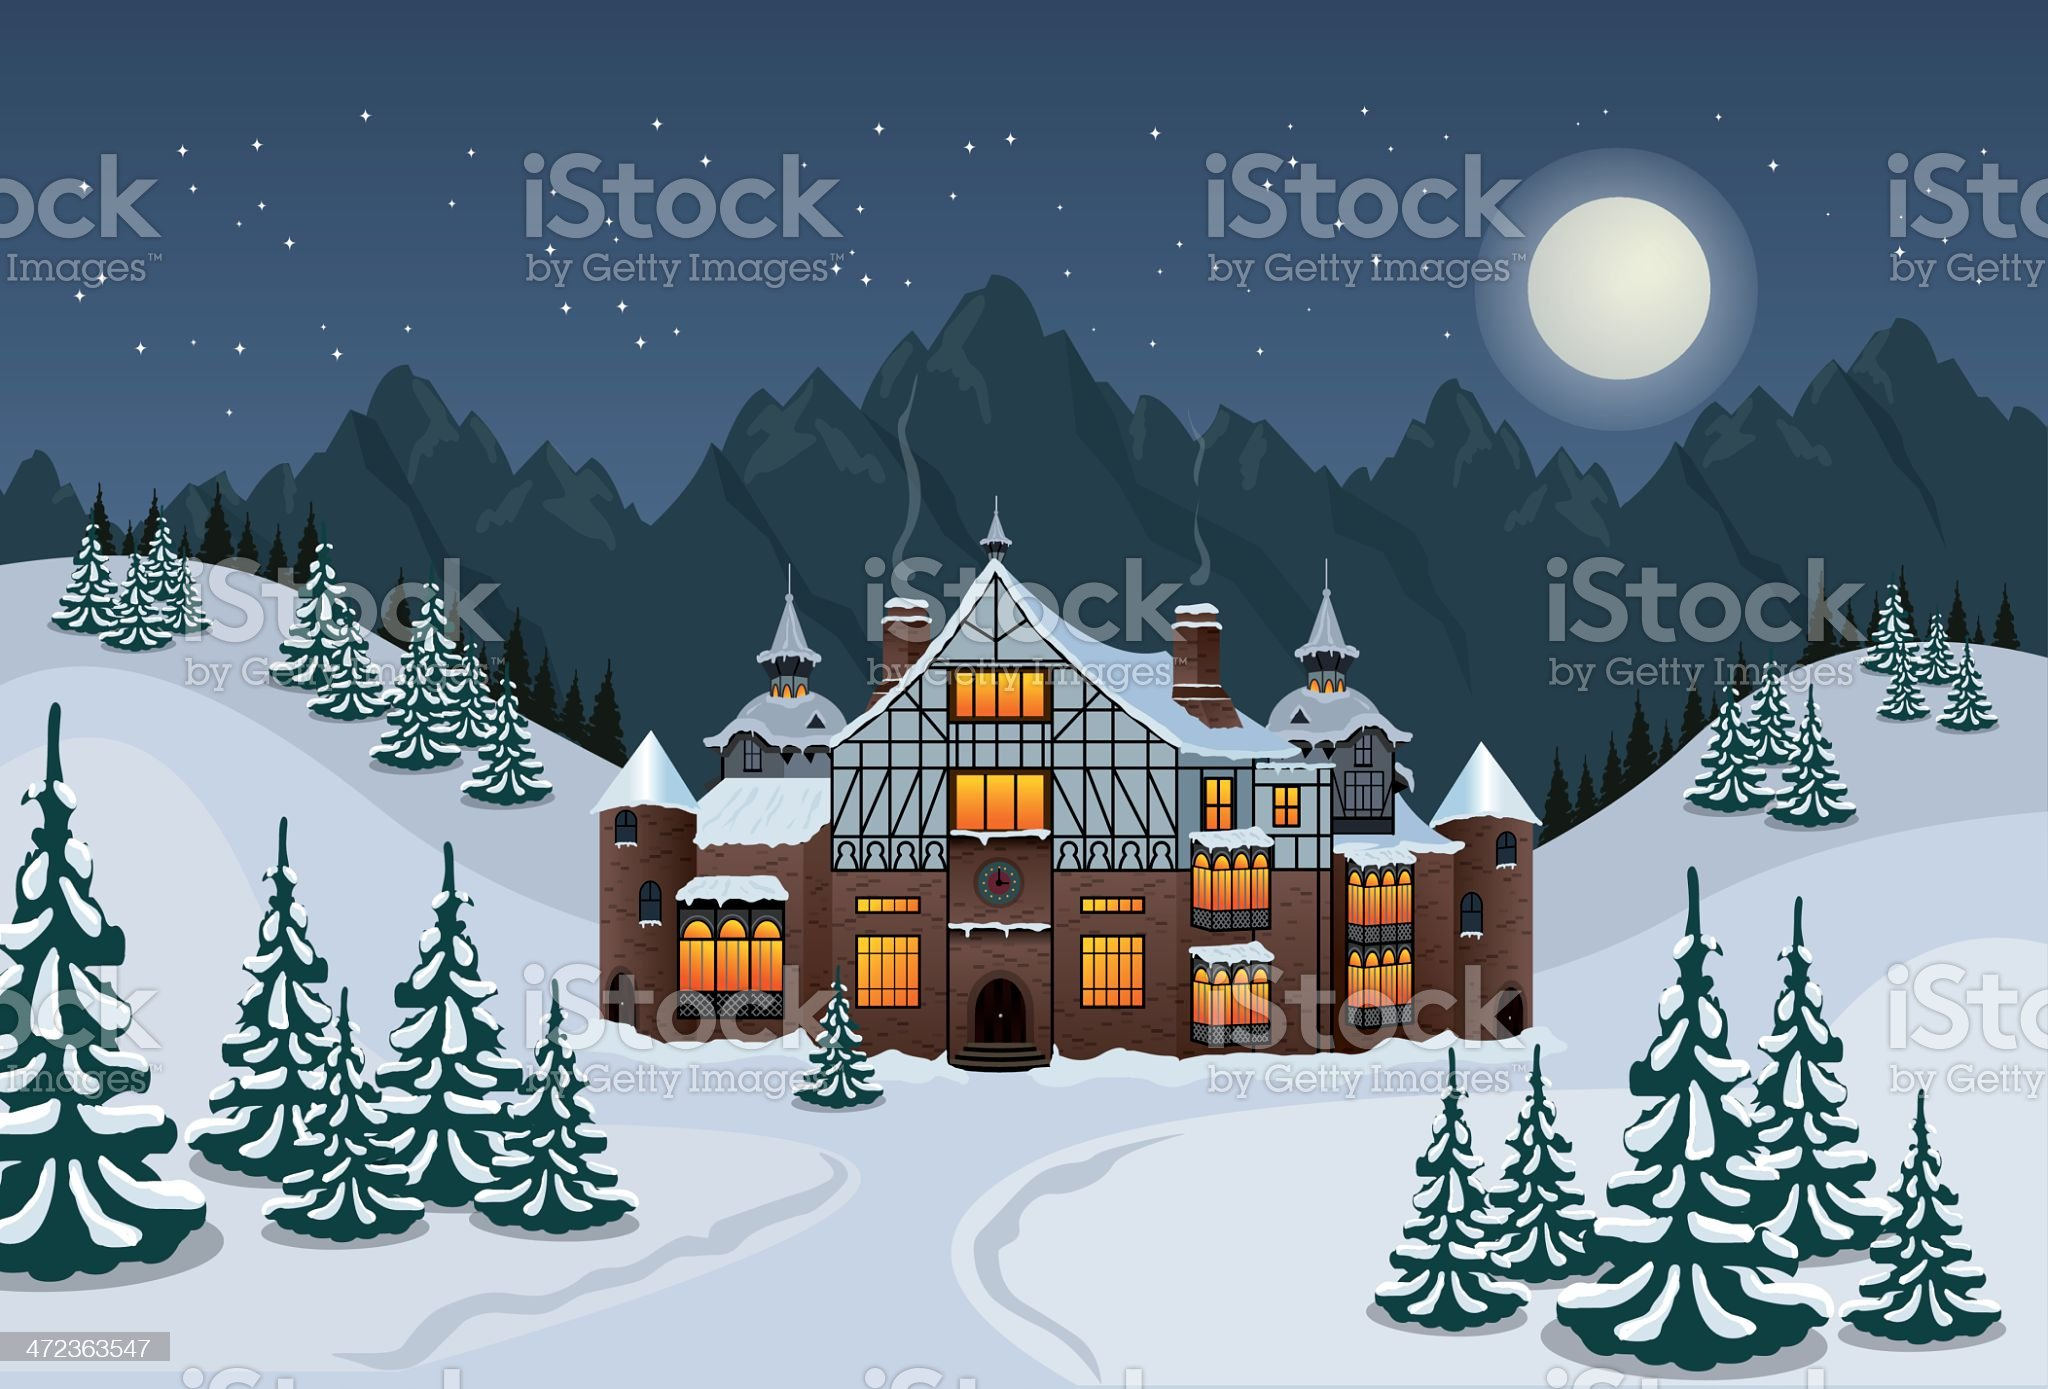 Santas workshop royalty-free stock vector art